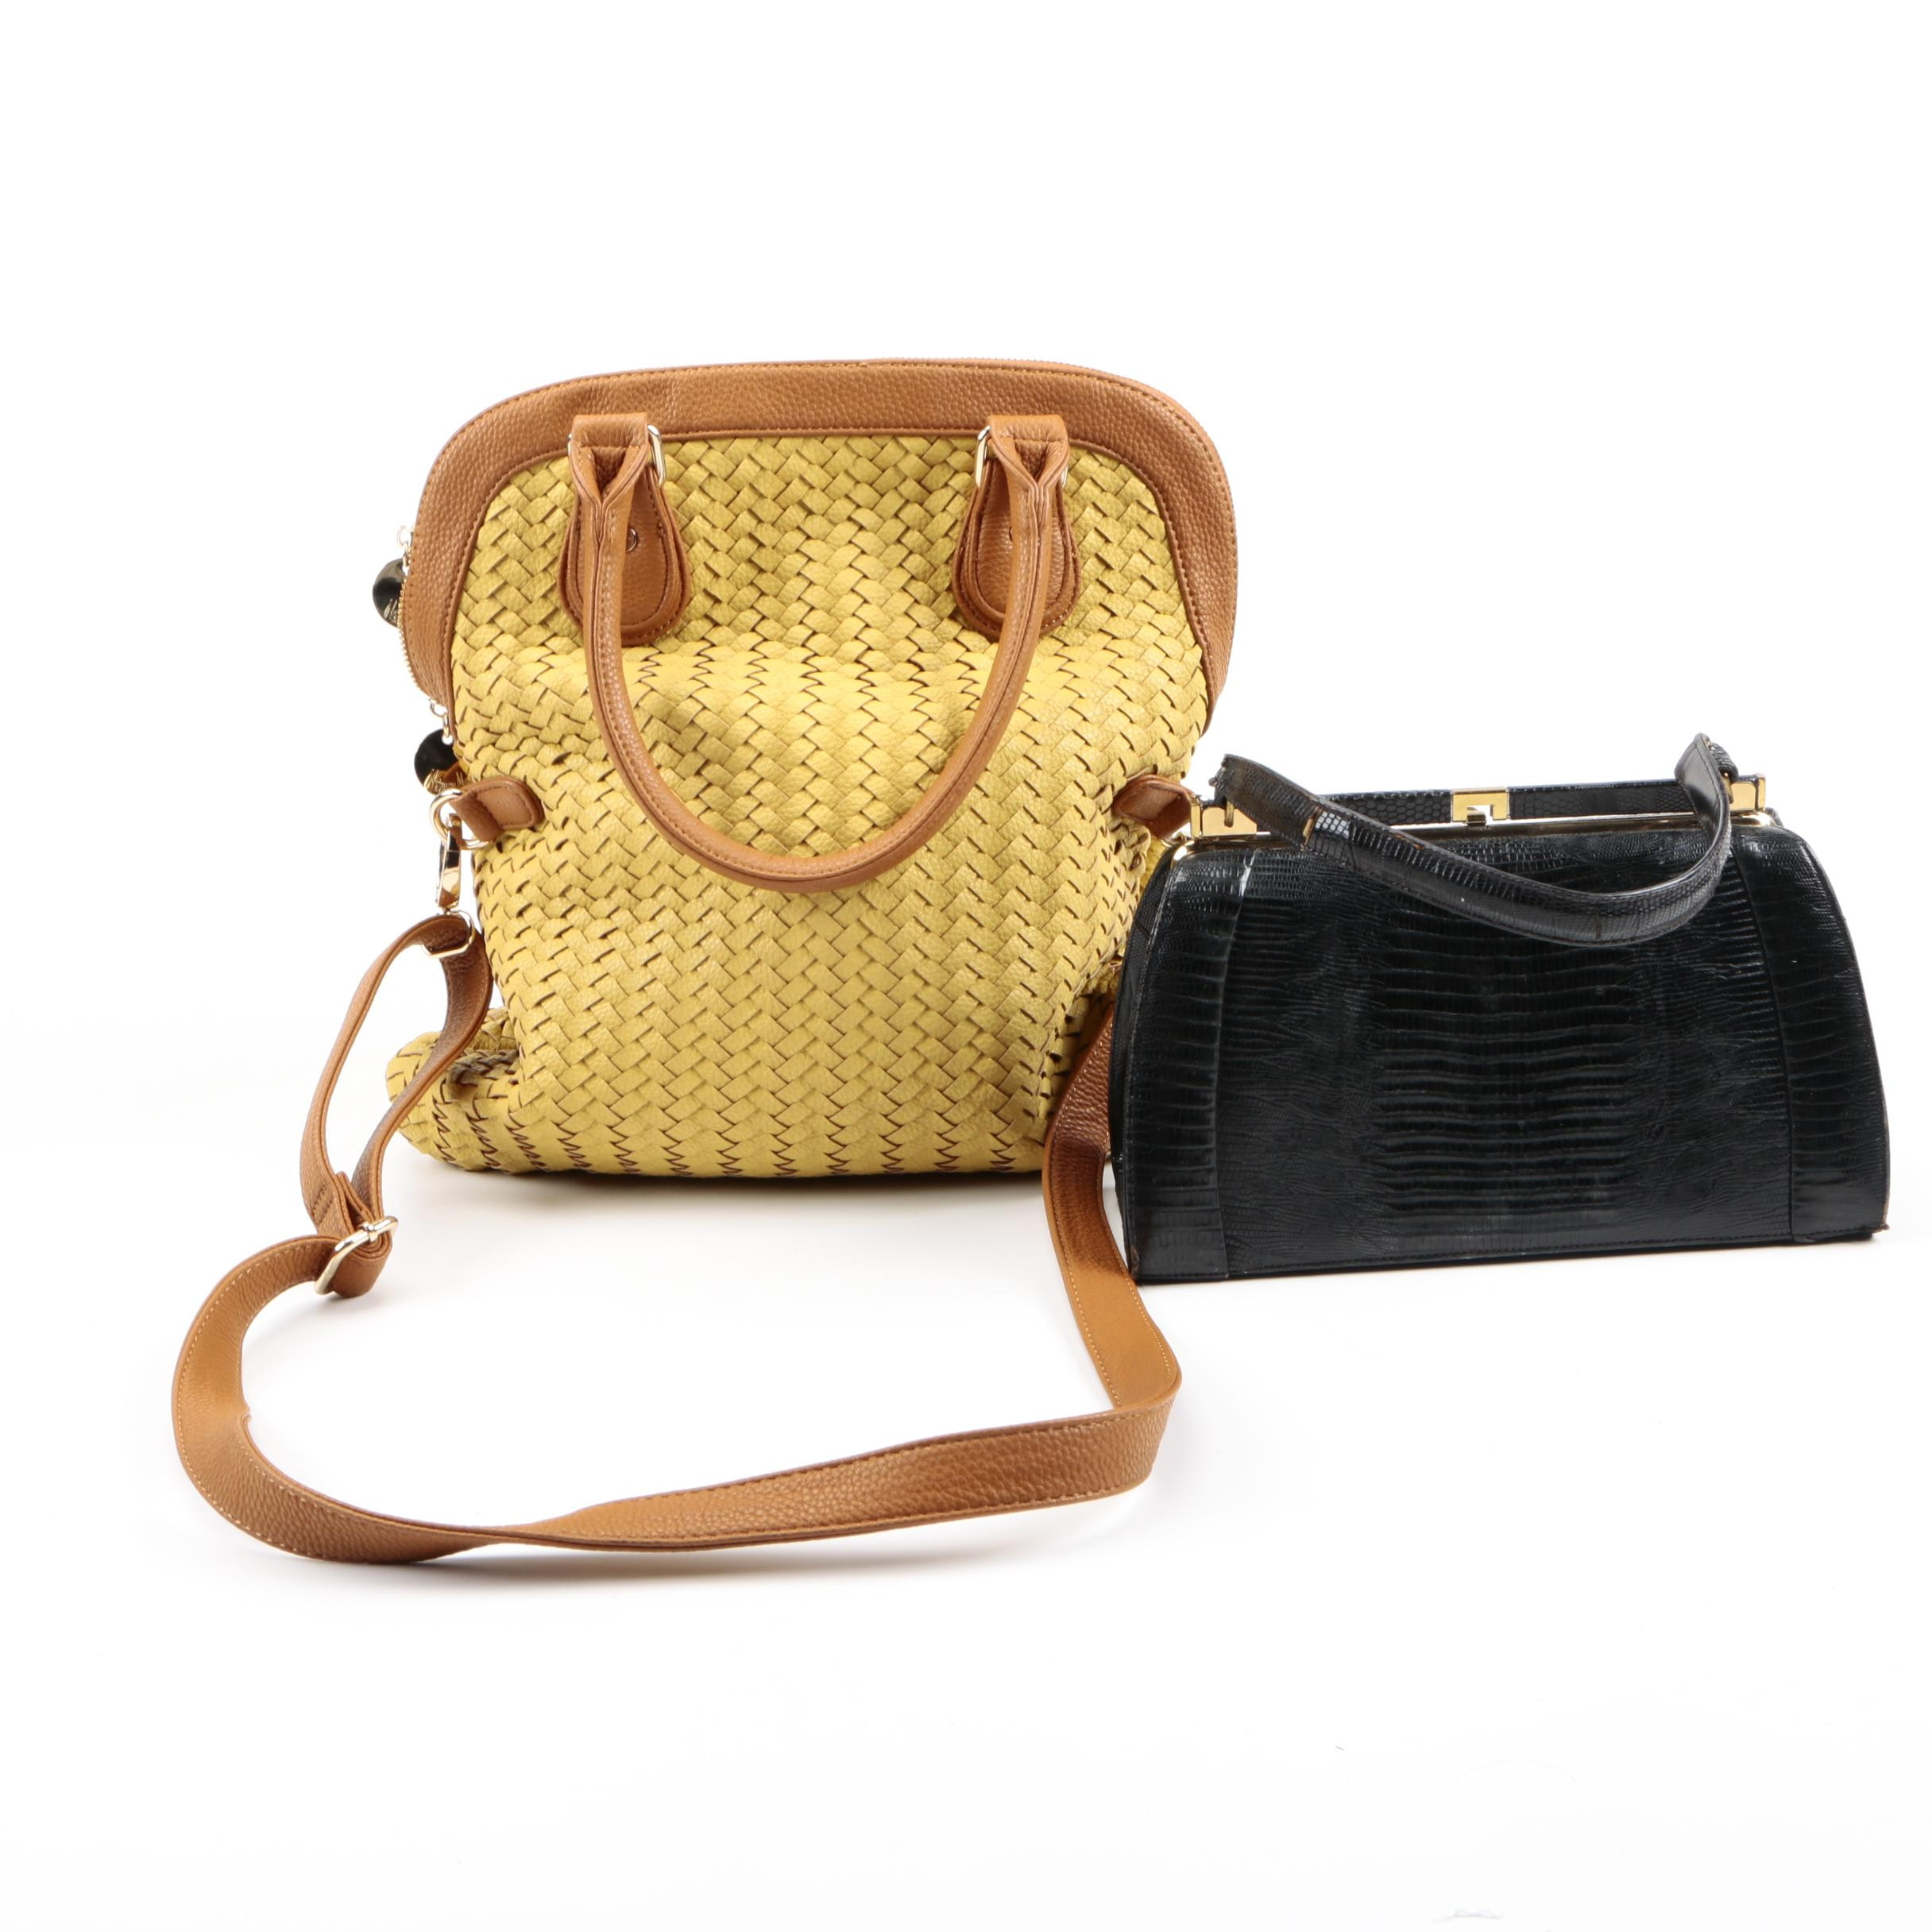 Woven Leather and Vintage Lizard Skin Handbags